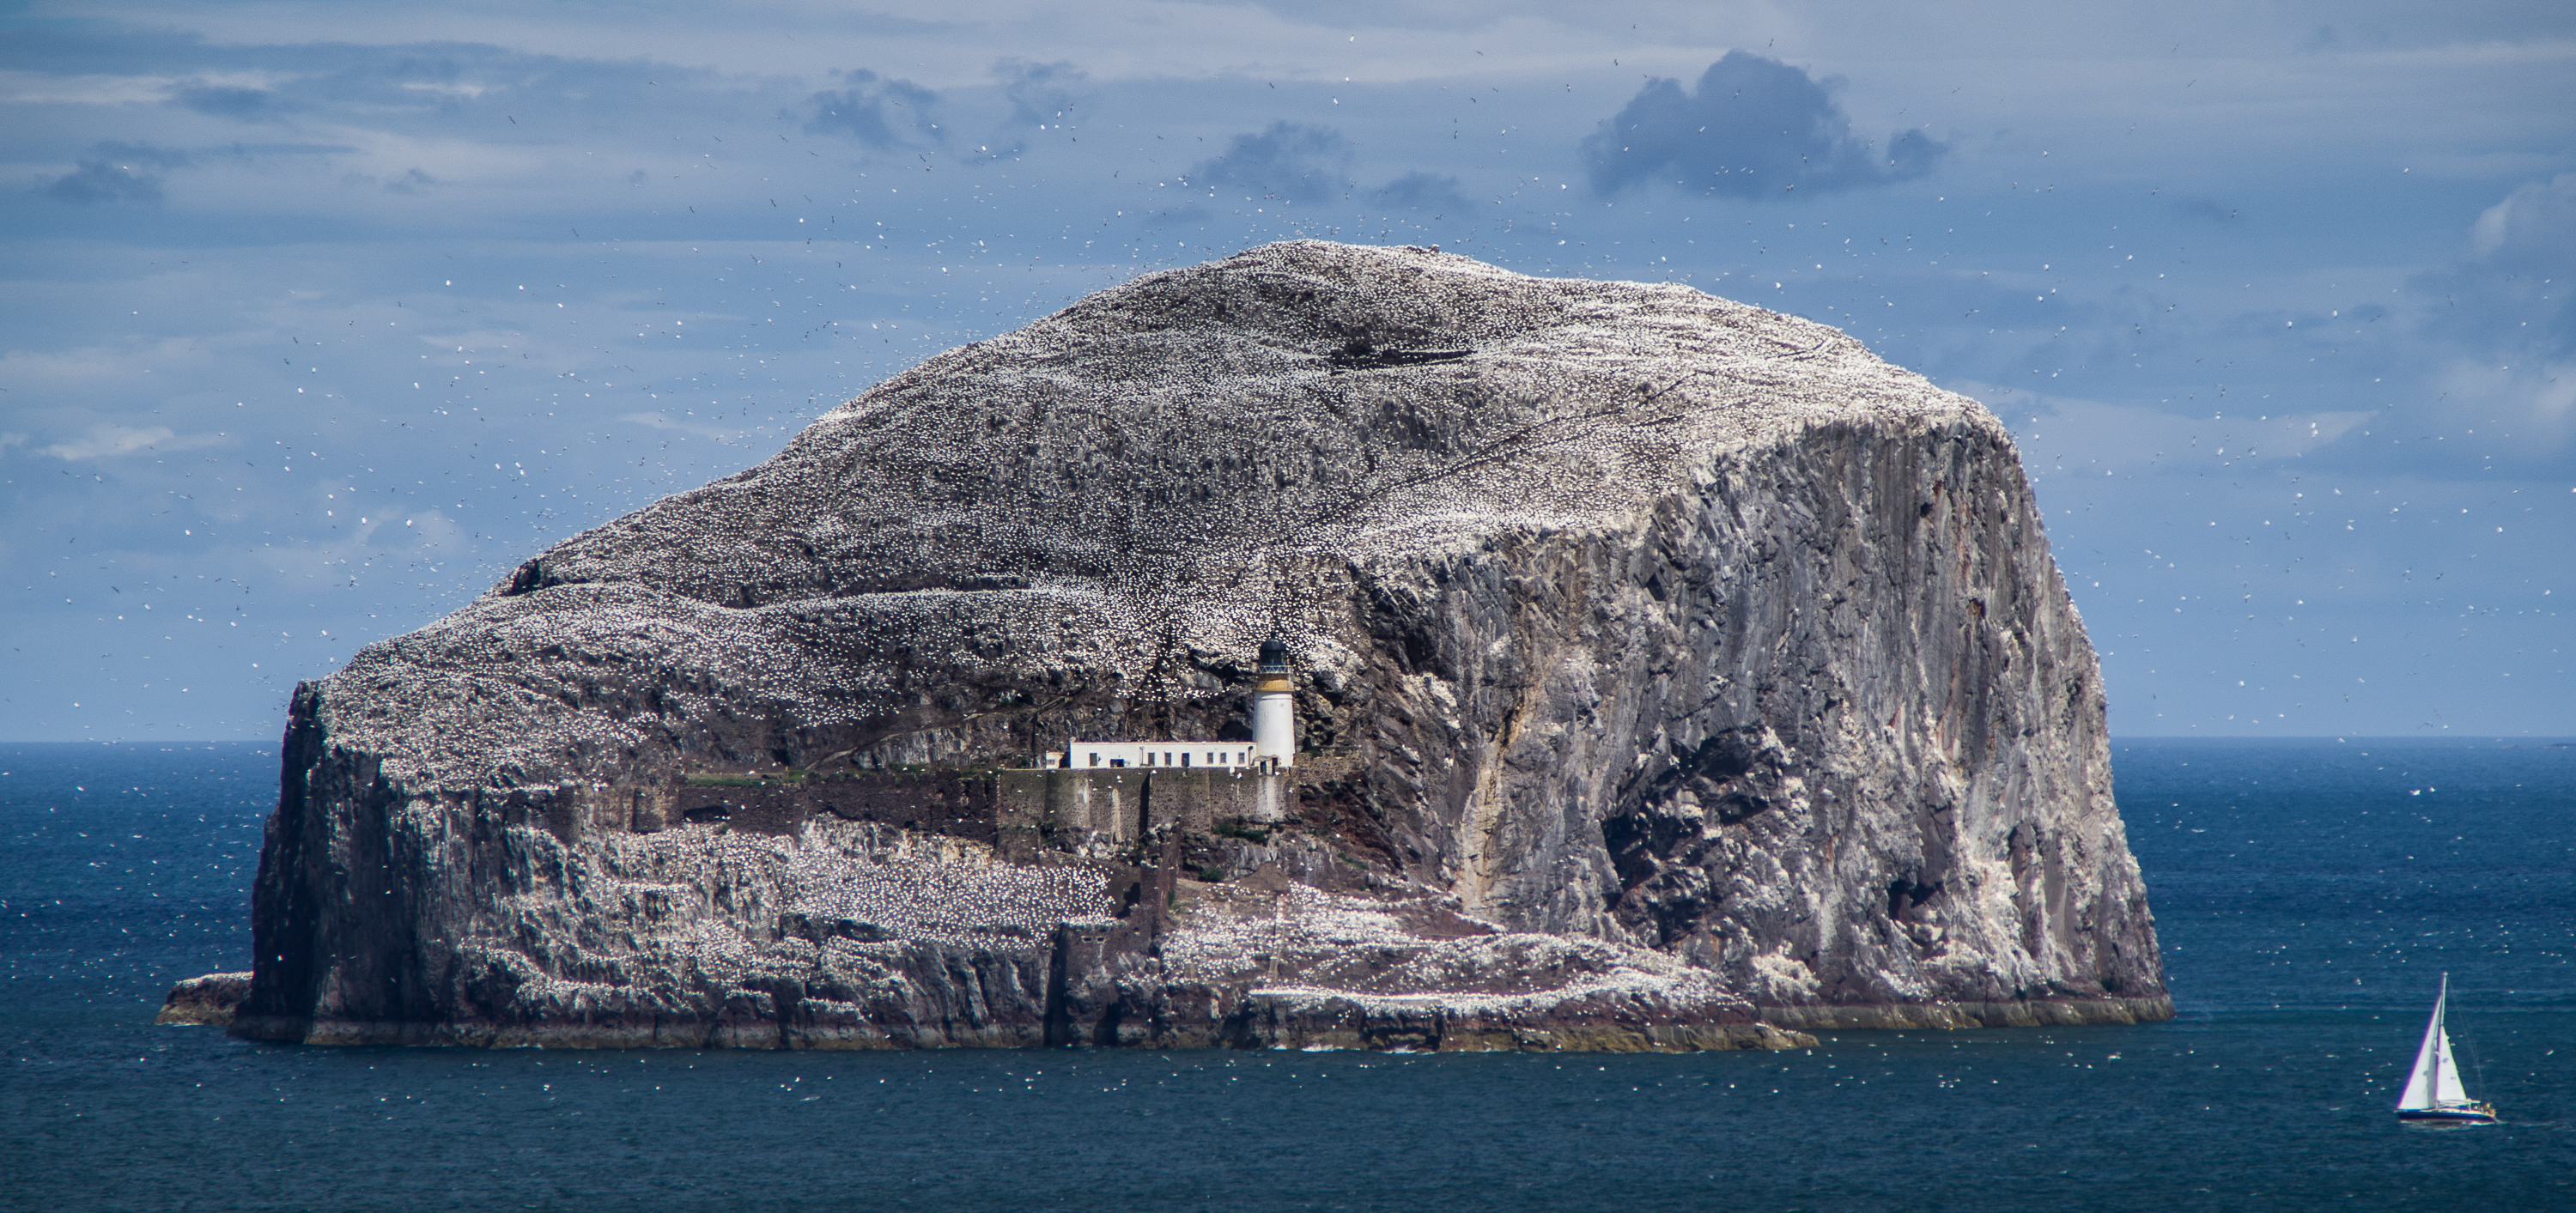 2018 Scotland 3rd prize: Bass rock lighthouse, by Ben Clarke, Wikimedia Commons CC BY-SA 4.0